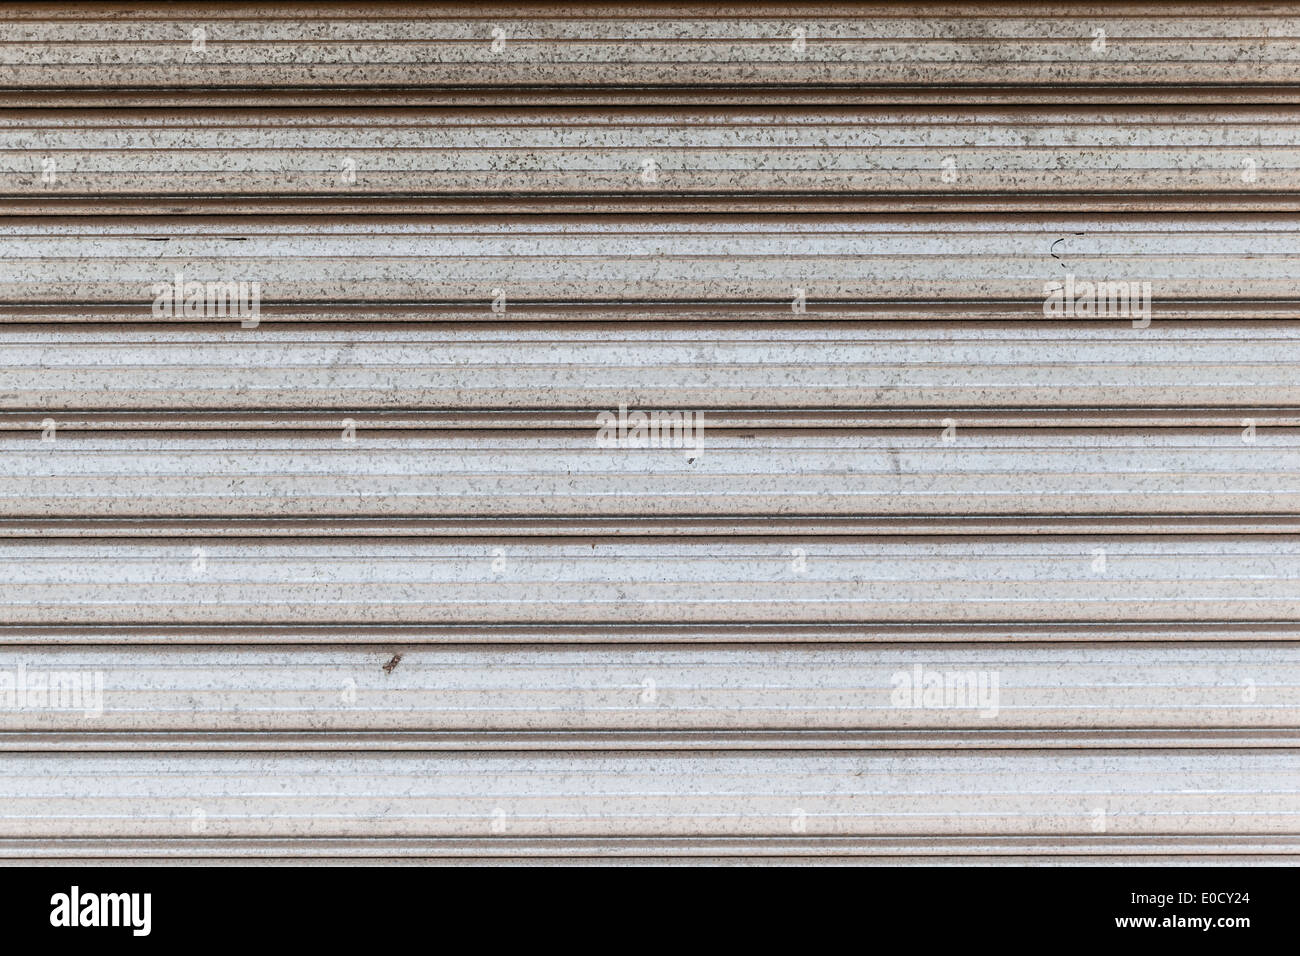 Roll Gate Stock Photos Amp Roll Gate Stock Images Alamy